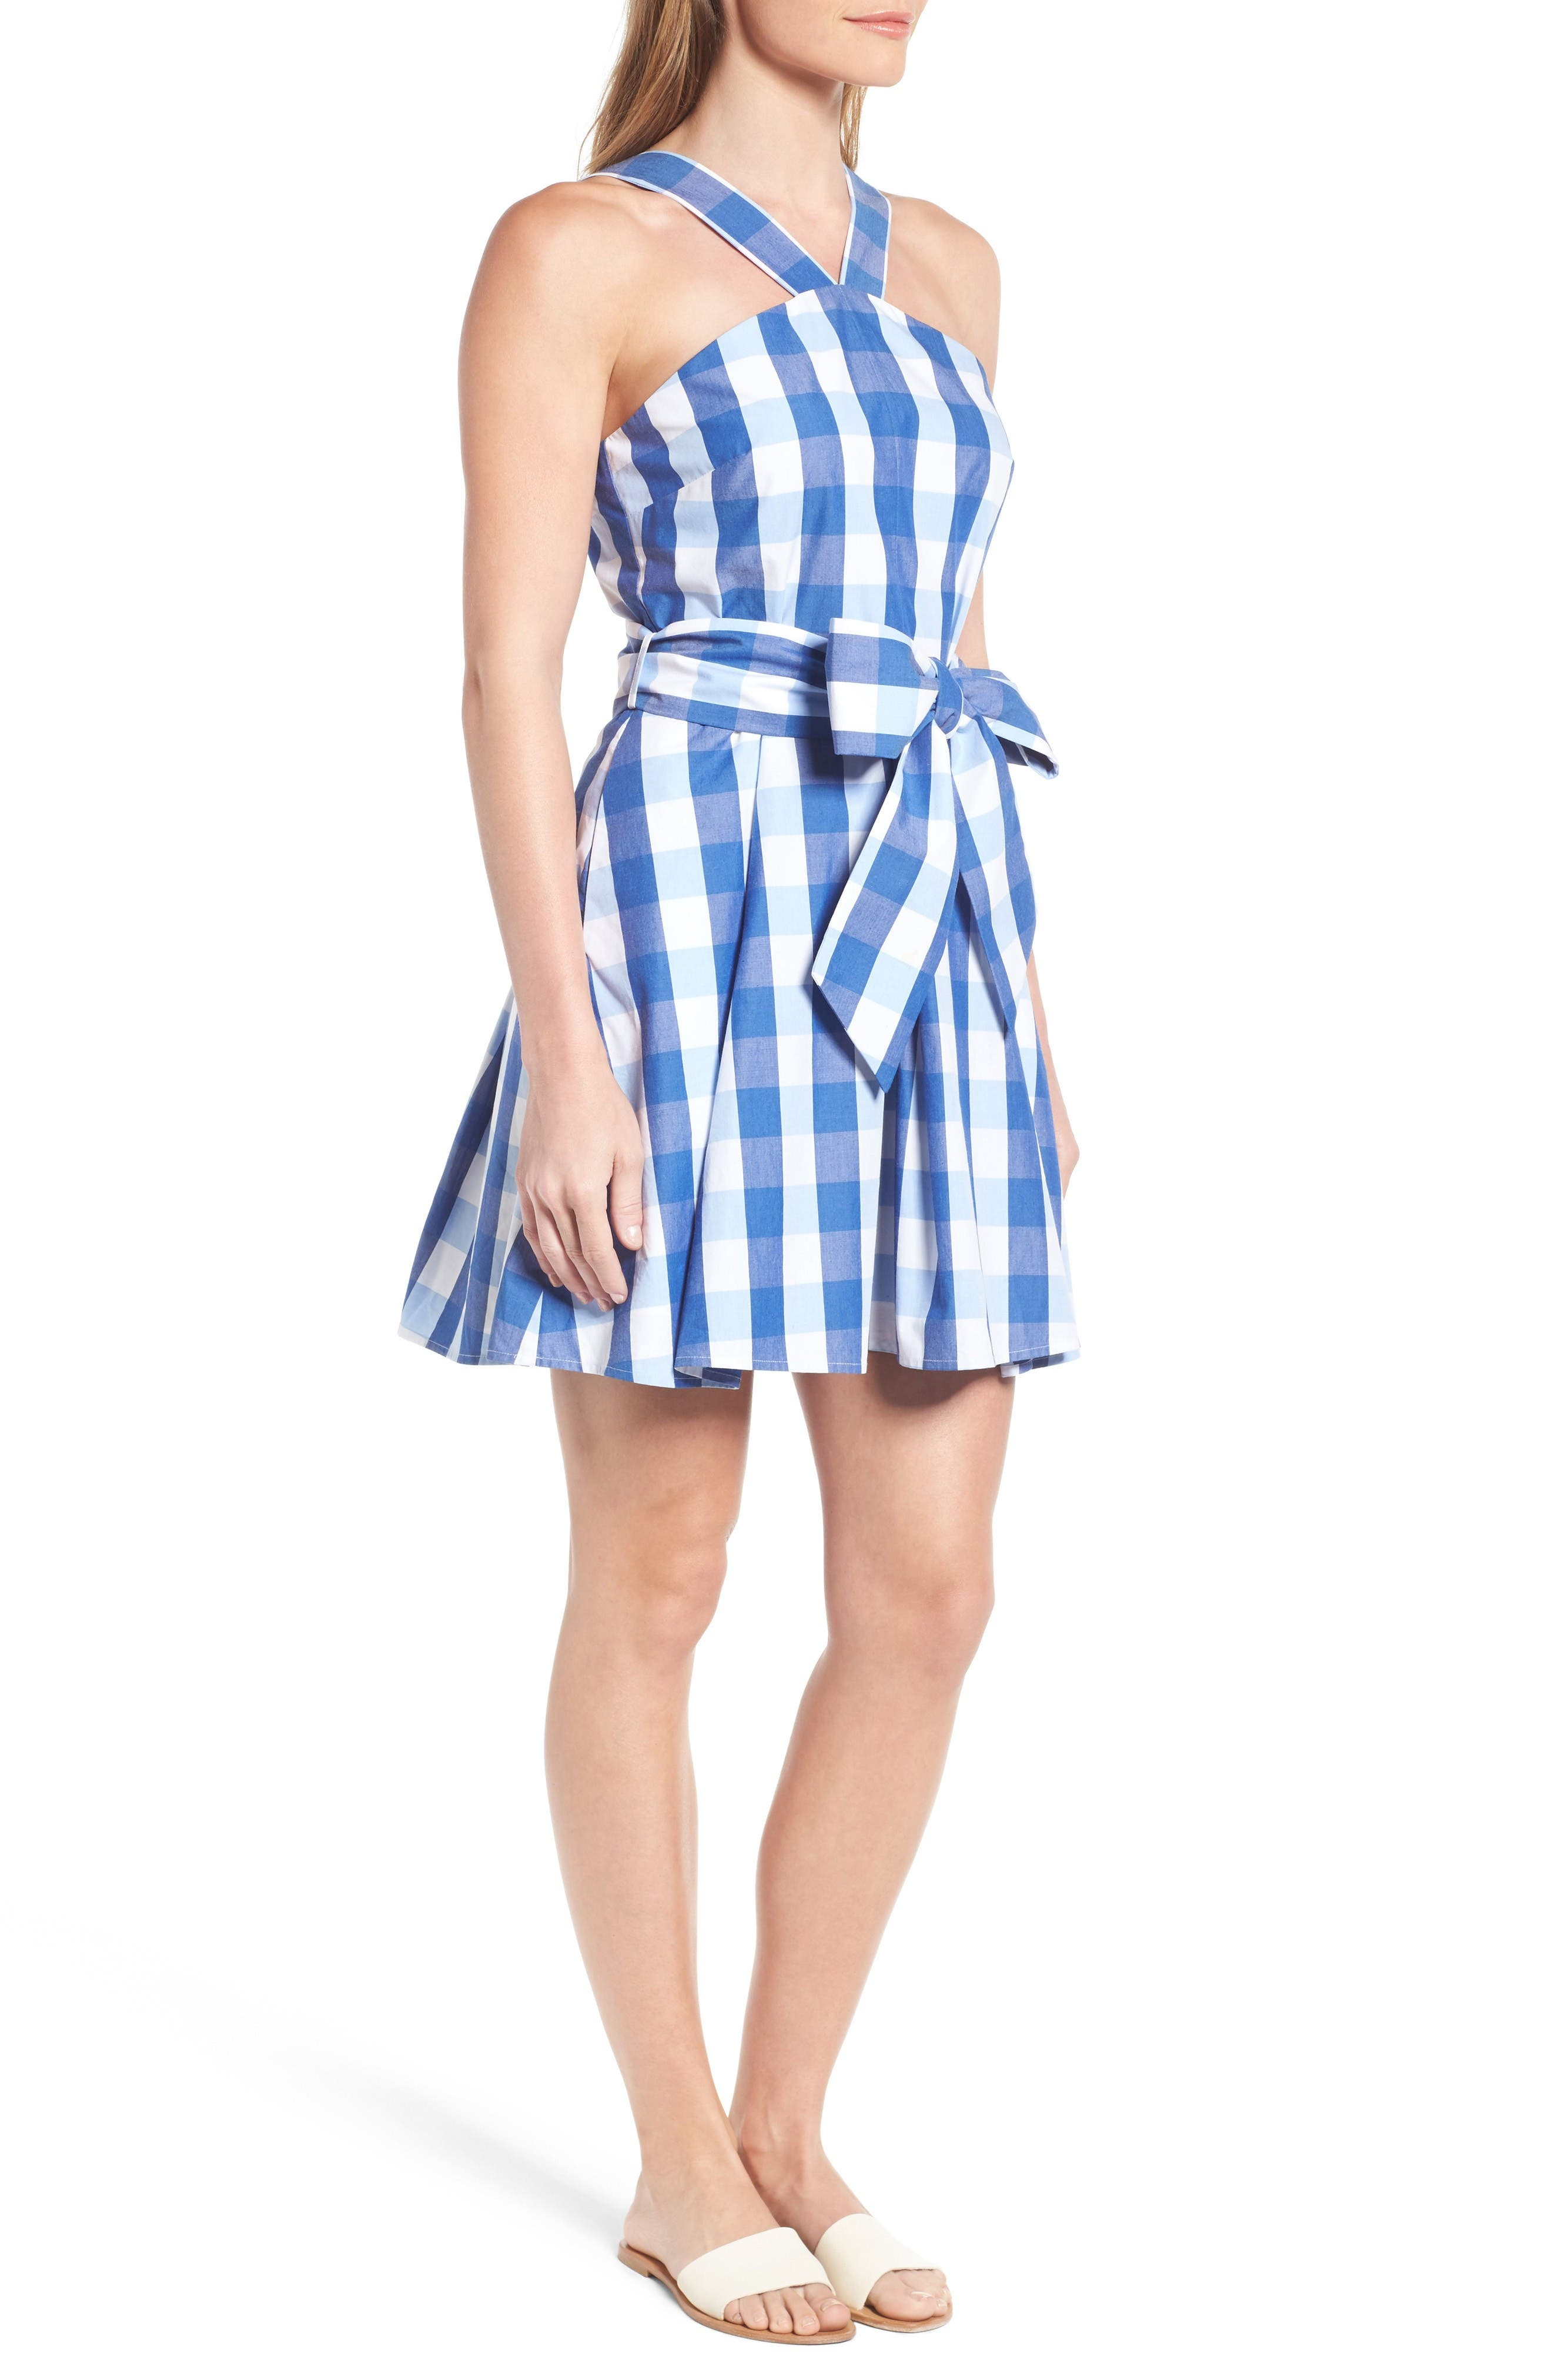 Mary Beth Cotton Sundress,                             Alternate thumbnail 5, color,                             Blue Parton Check